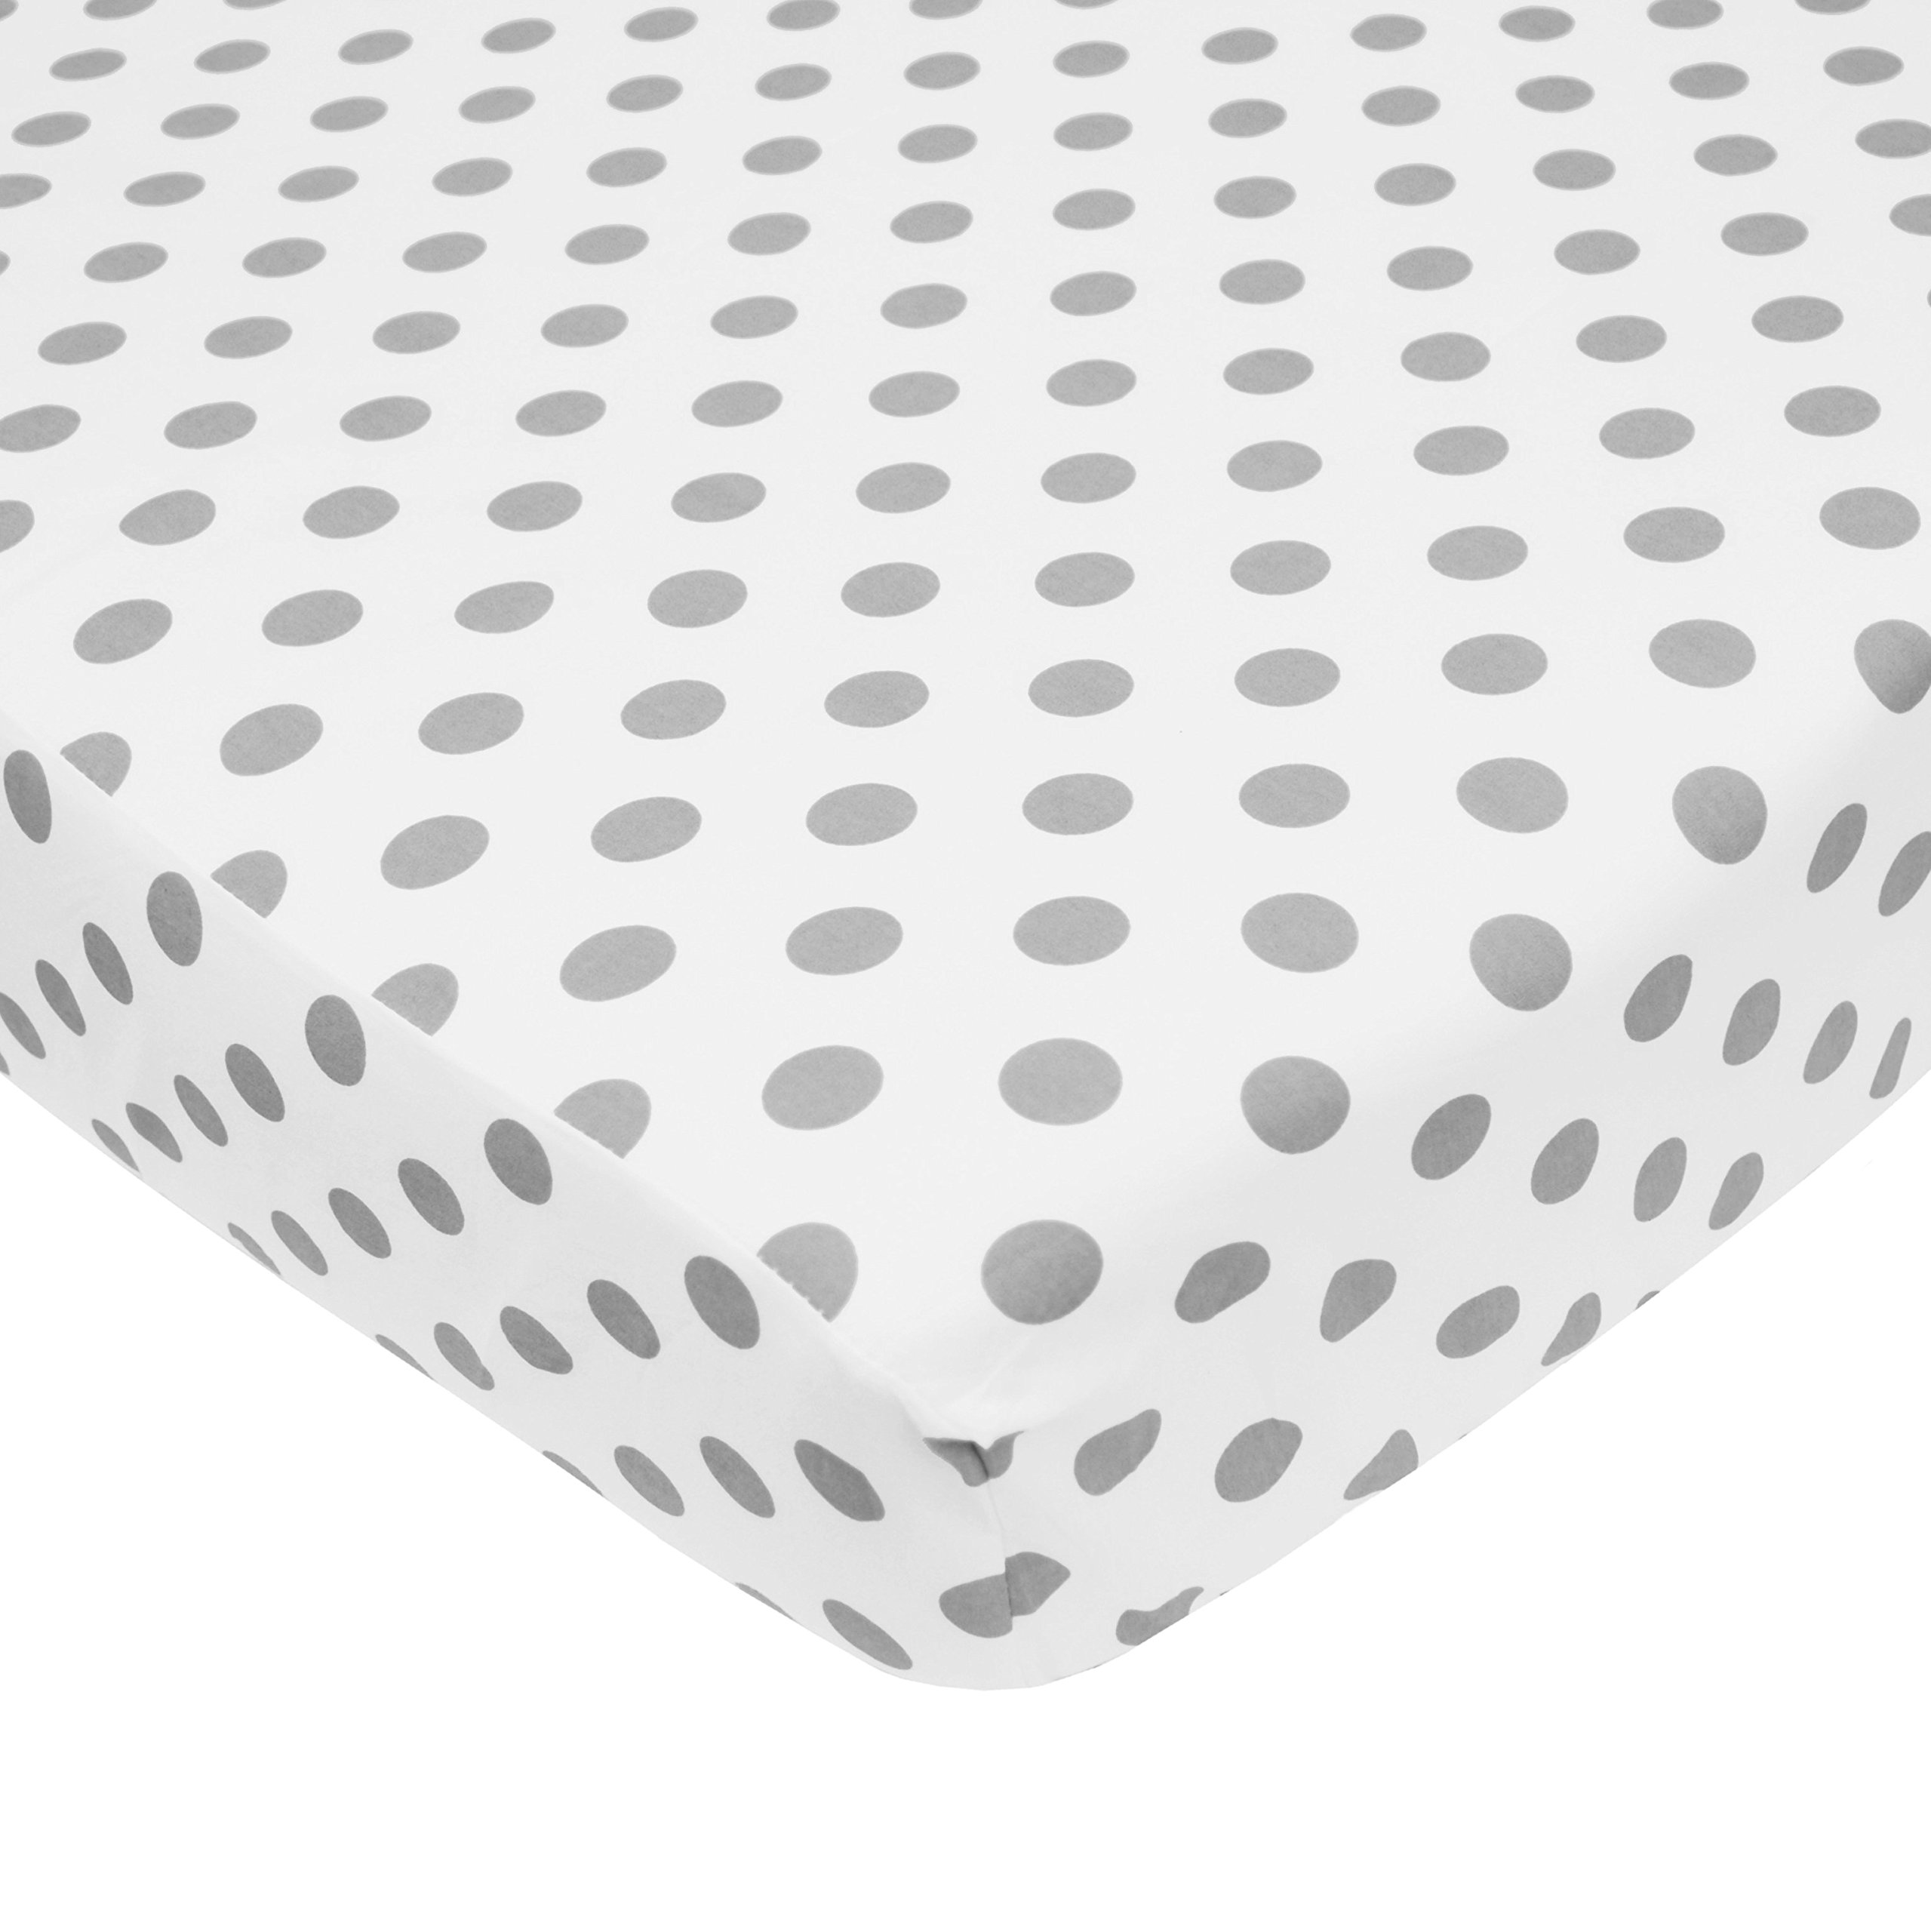 American Baby Company 100% Cotton Percale Fitted Crib Sheet for Standard Crib and Toddler Mattresses, White with Gray Dots